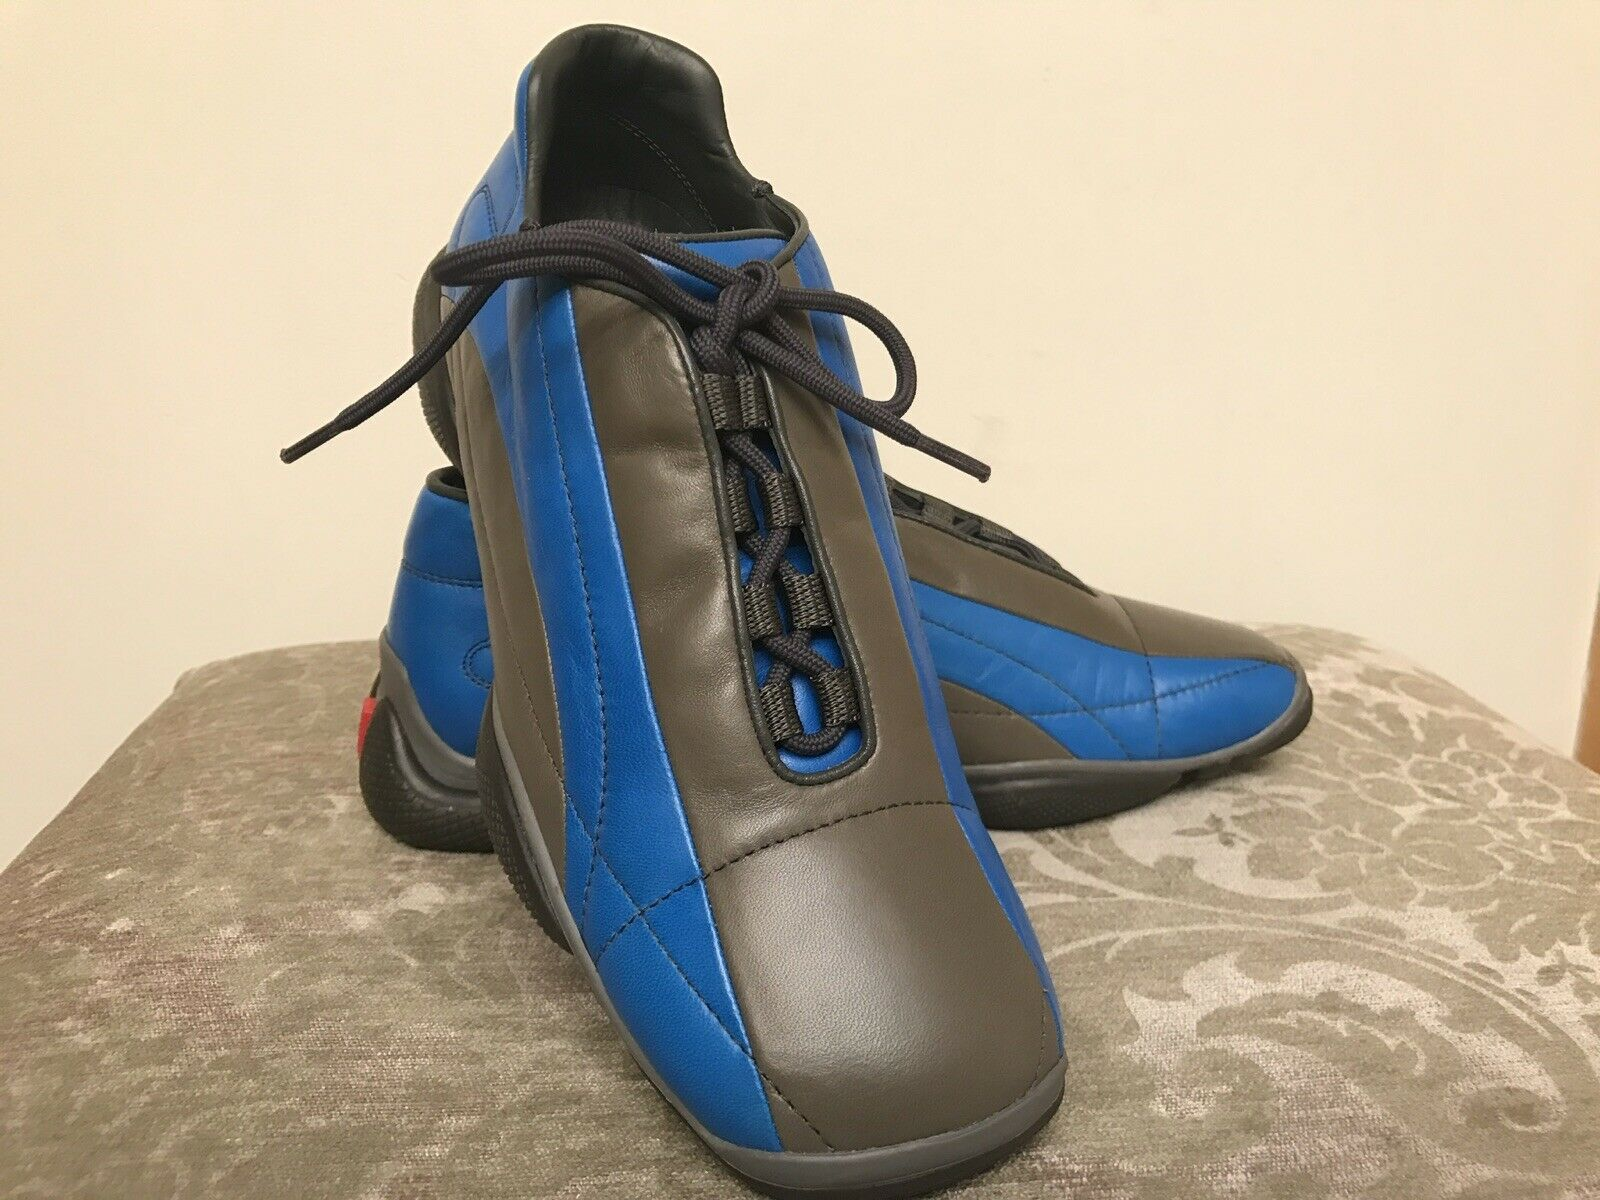 Prada Sport Bicolor Grey    Cobalt color Womens Leather shoes Size 8 US New  5d28f5